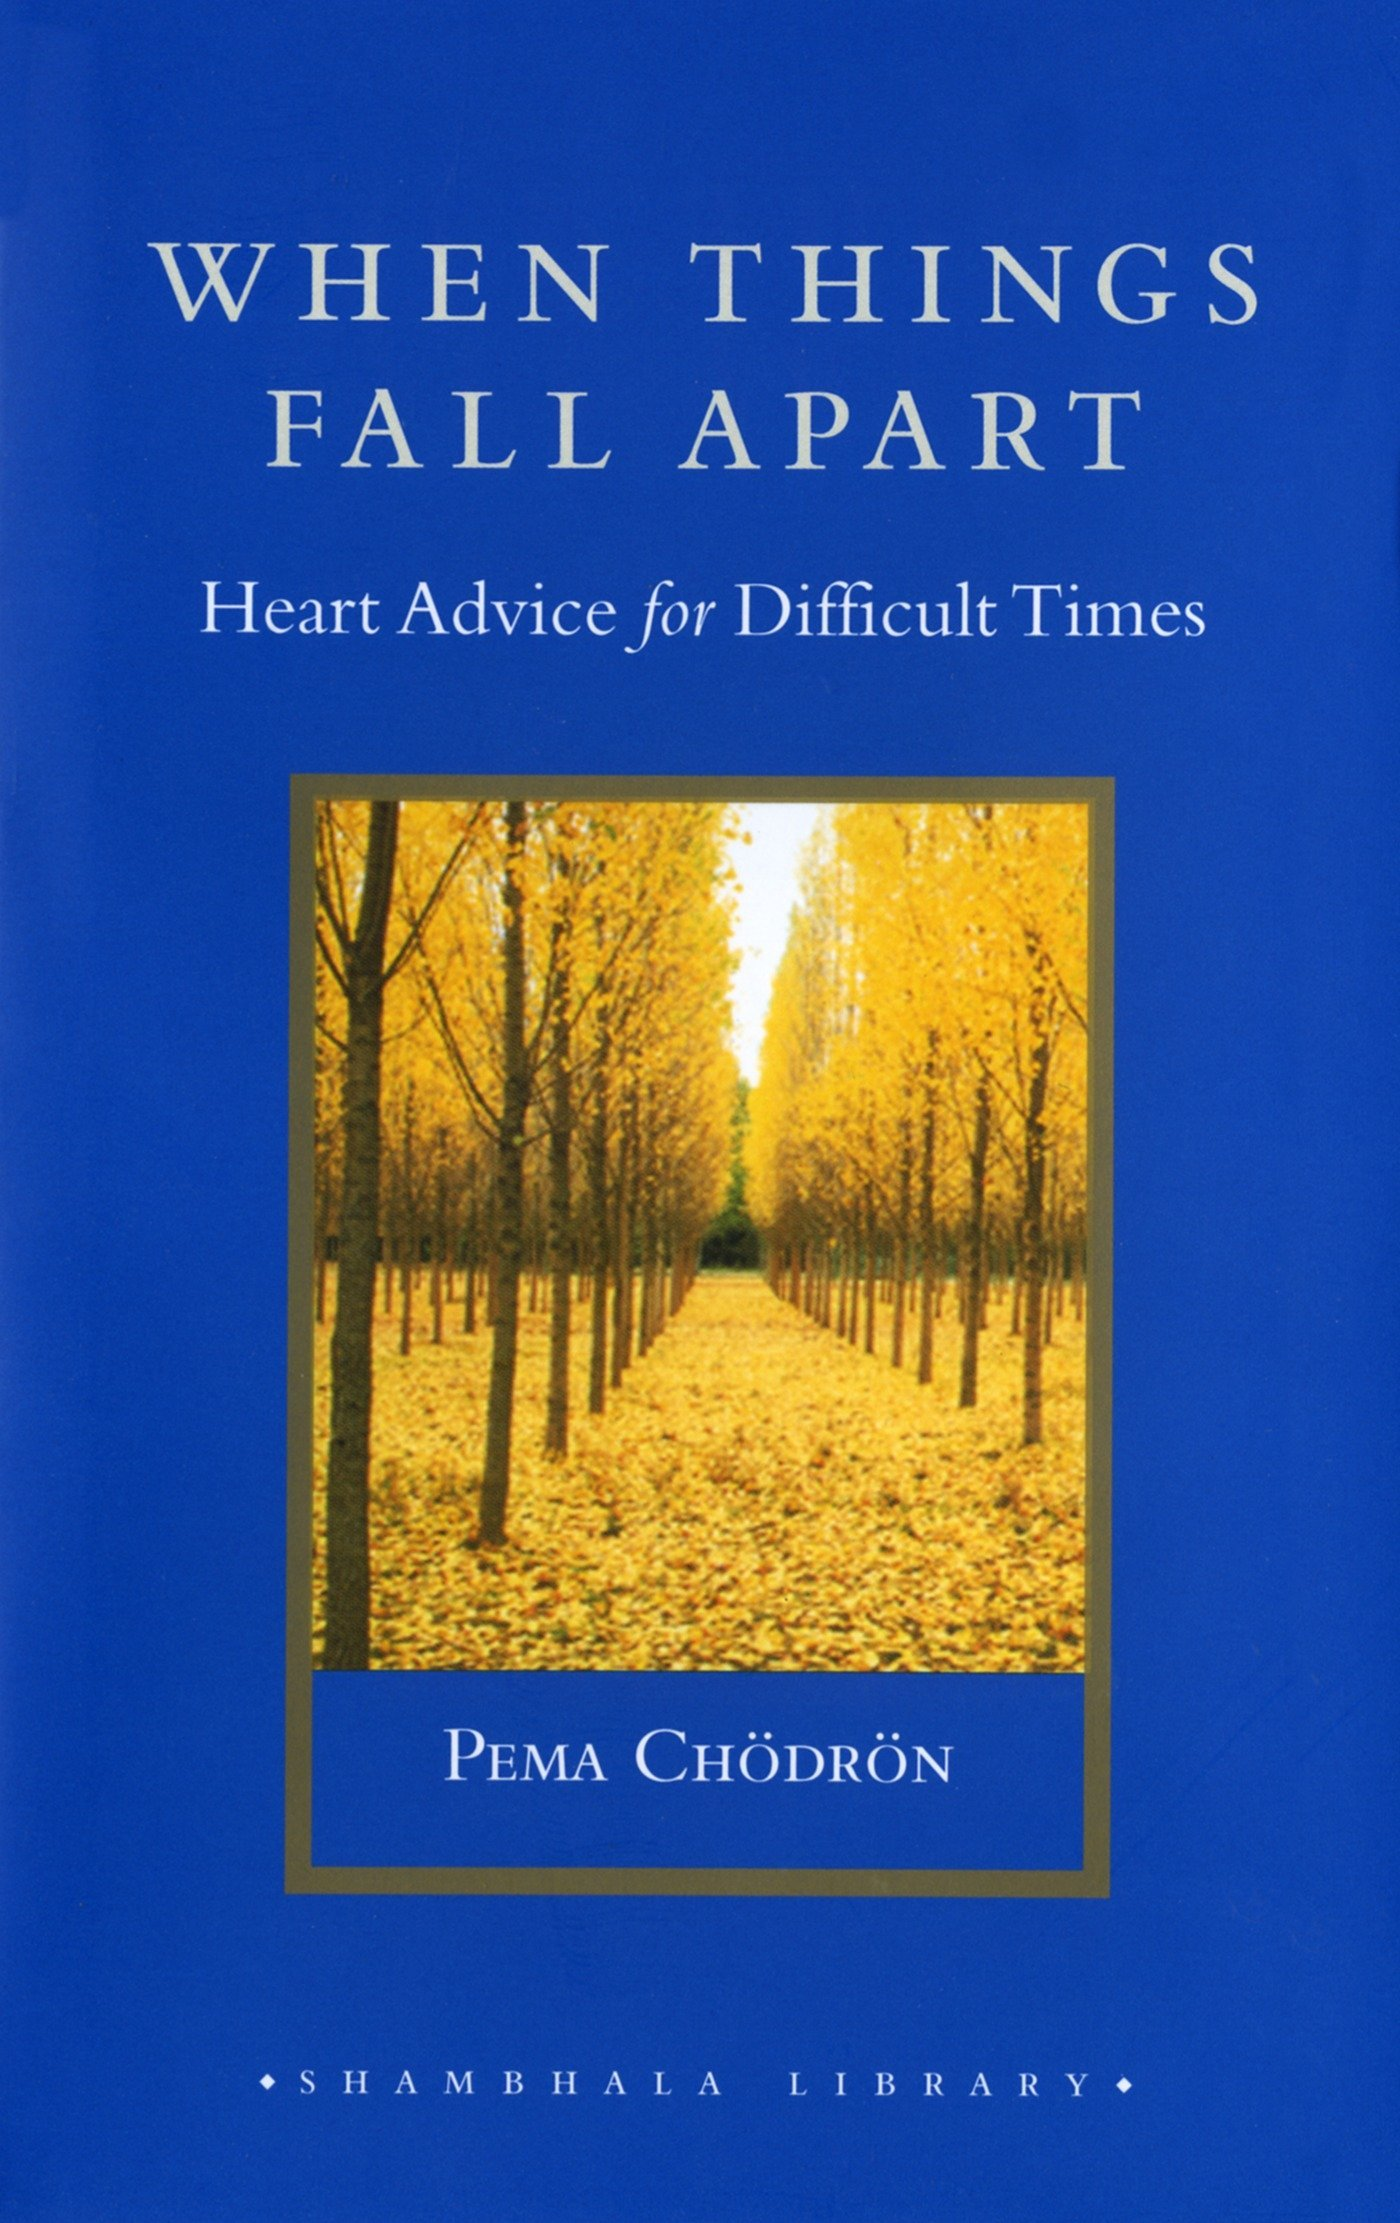 Amazoncom When Things Fall Apart Heart Advice For Difficult Times